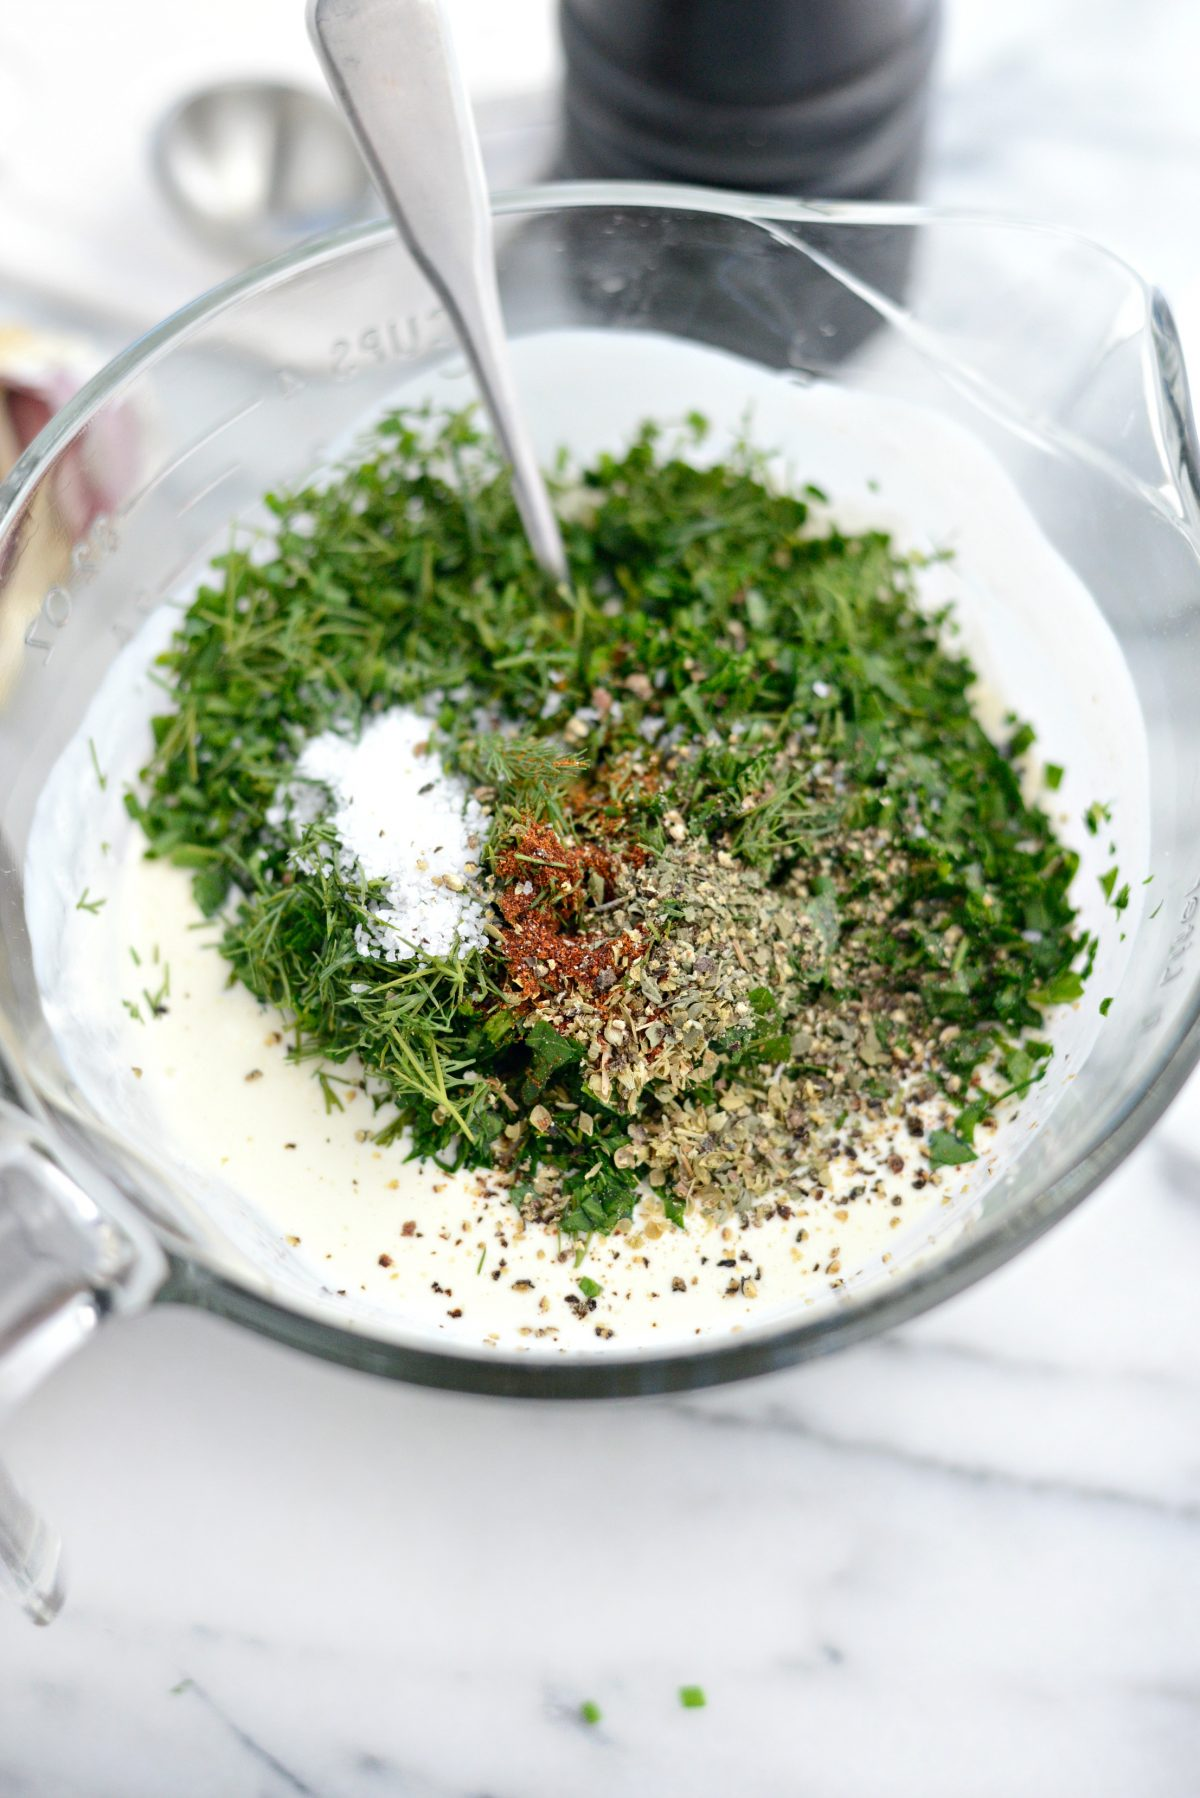 Add fresh herbs and dried spices to dressing